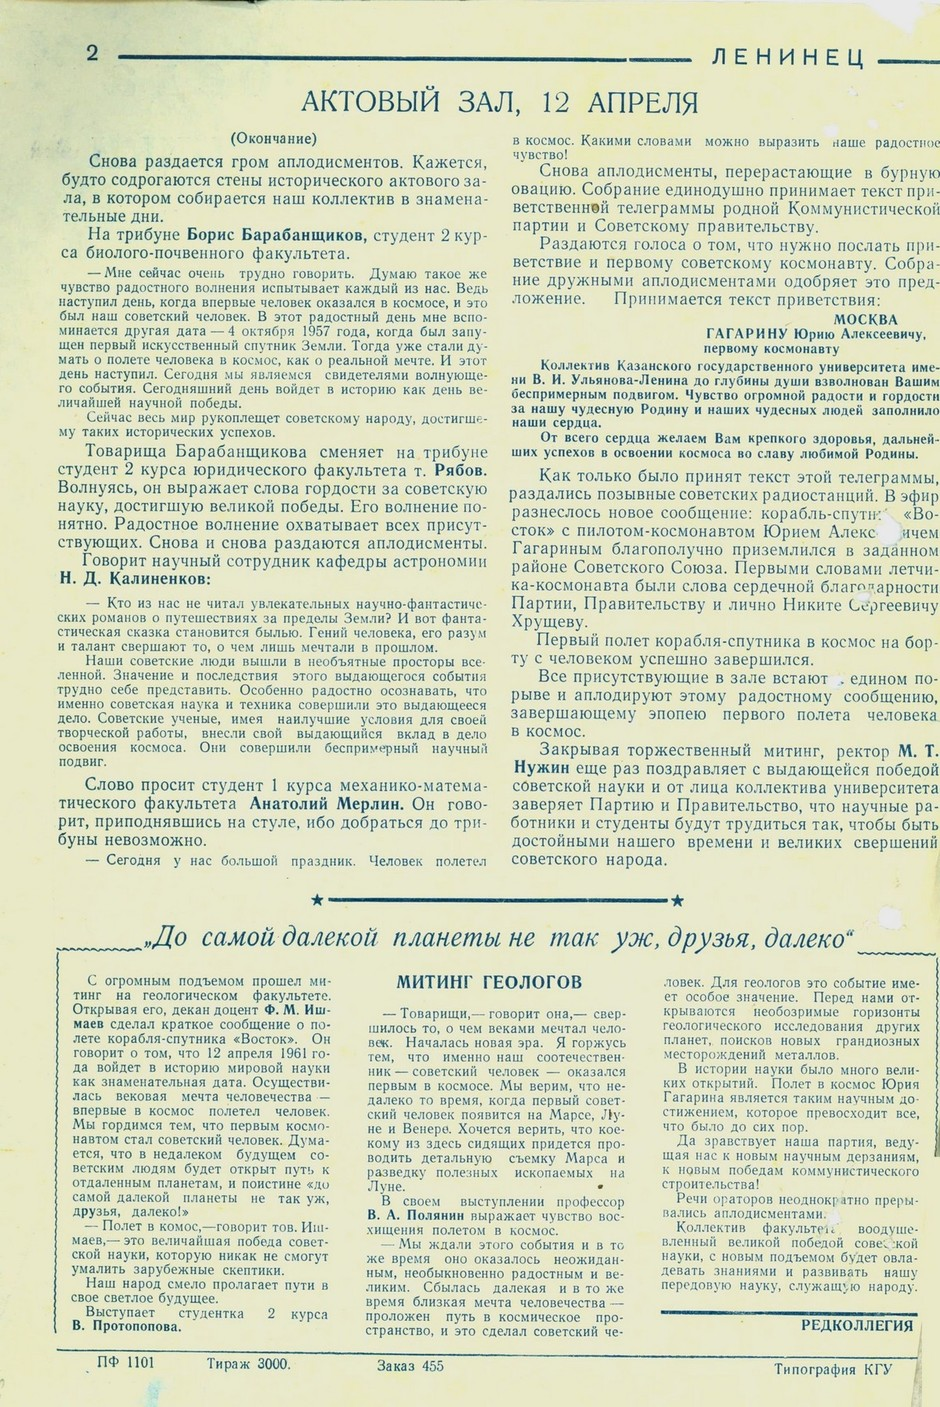 Special edition of the newspaper Leninist of the Kazan State University named after V. I. Ulyanov-Lenin devoted to the first manned flight into space. April 12, 1961